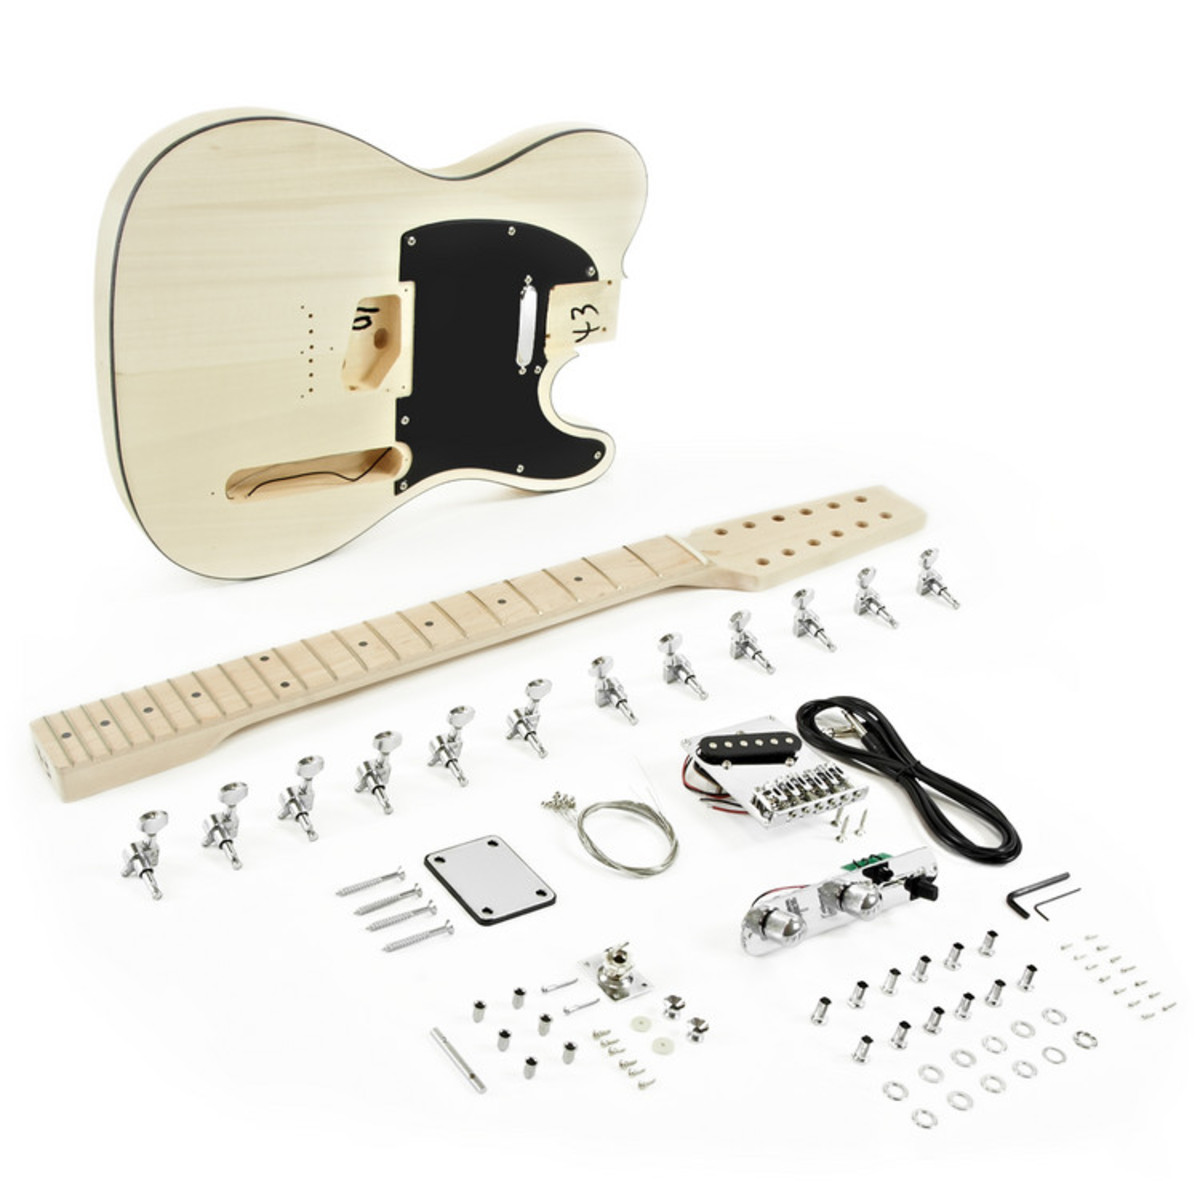 12 string knoxville electric guitar diy kit b stock at gear4music. Black Bedroom Furniture Sets. Home Design Ideas